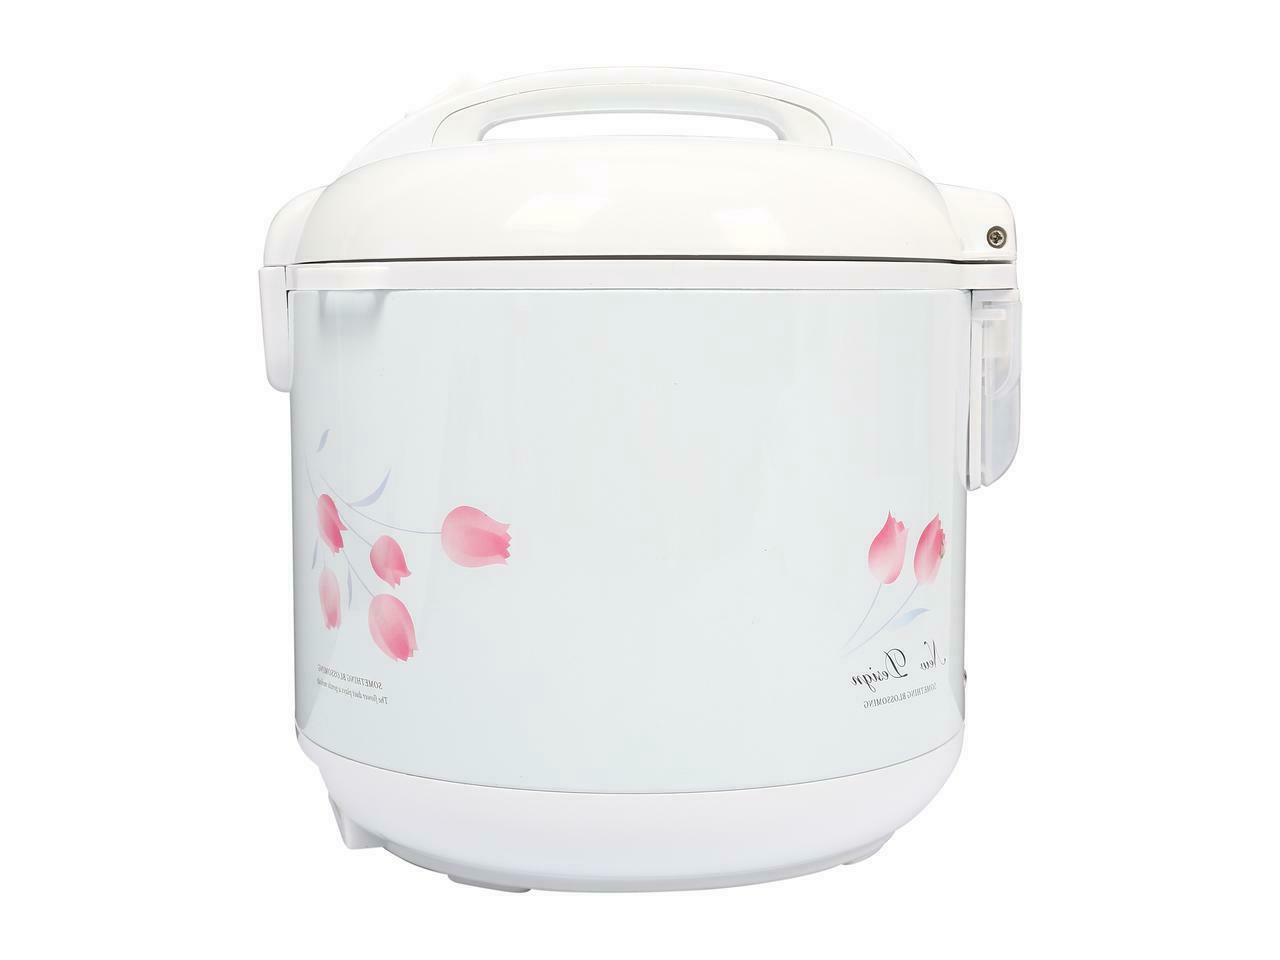 TRC-04 Cool Rice Cooker with Basket, White NEW